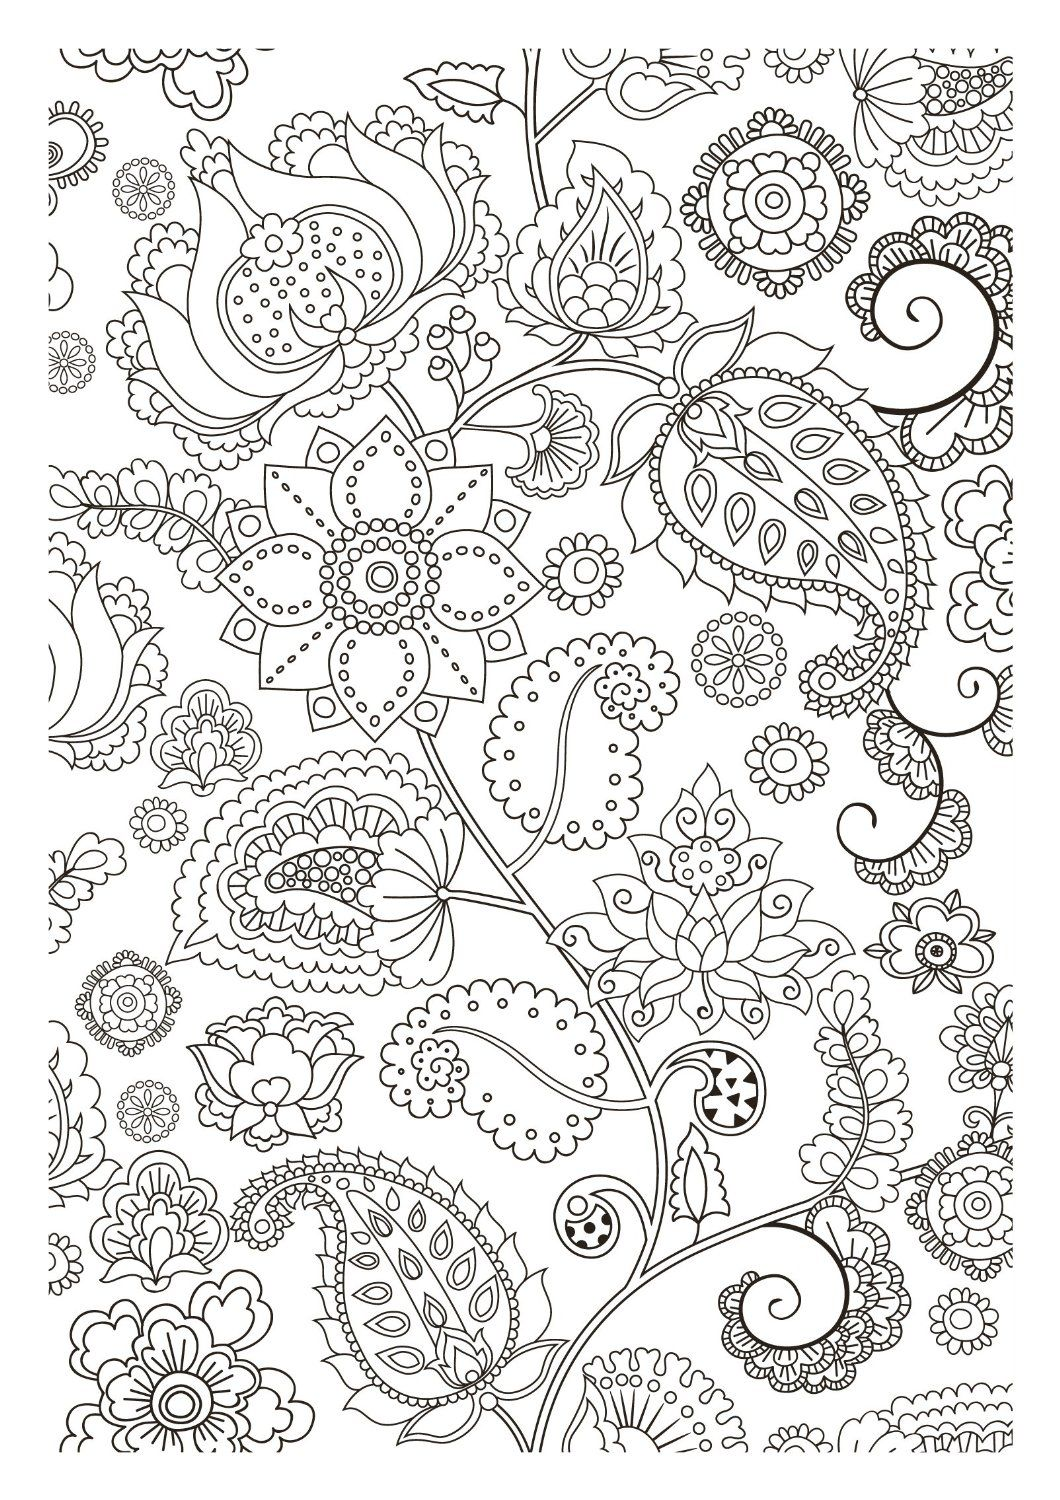 coloriages antistress colorir Pinterest Adult coloring